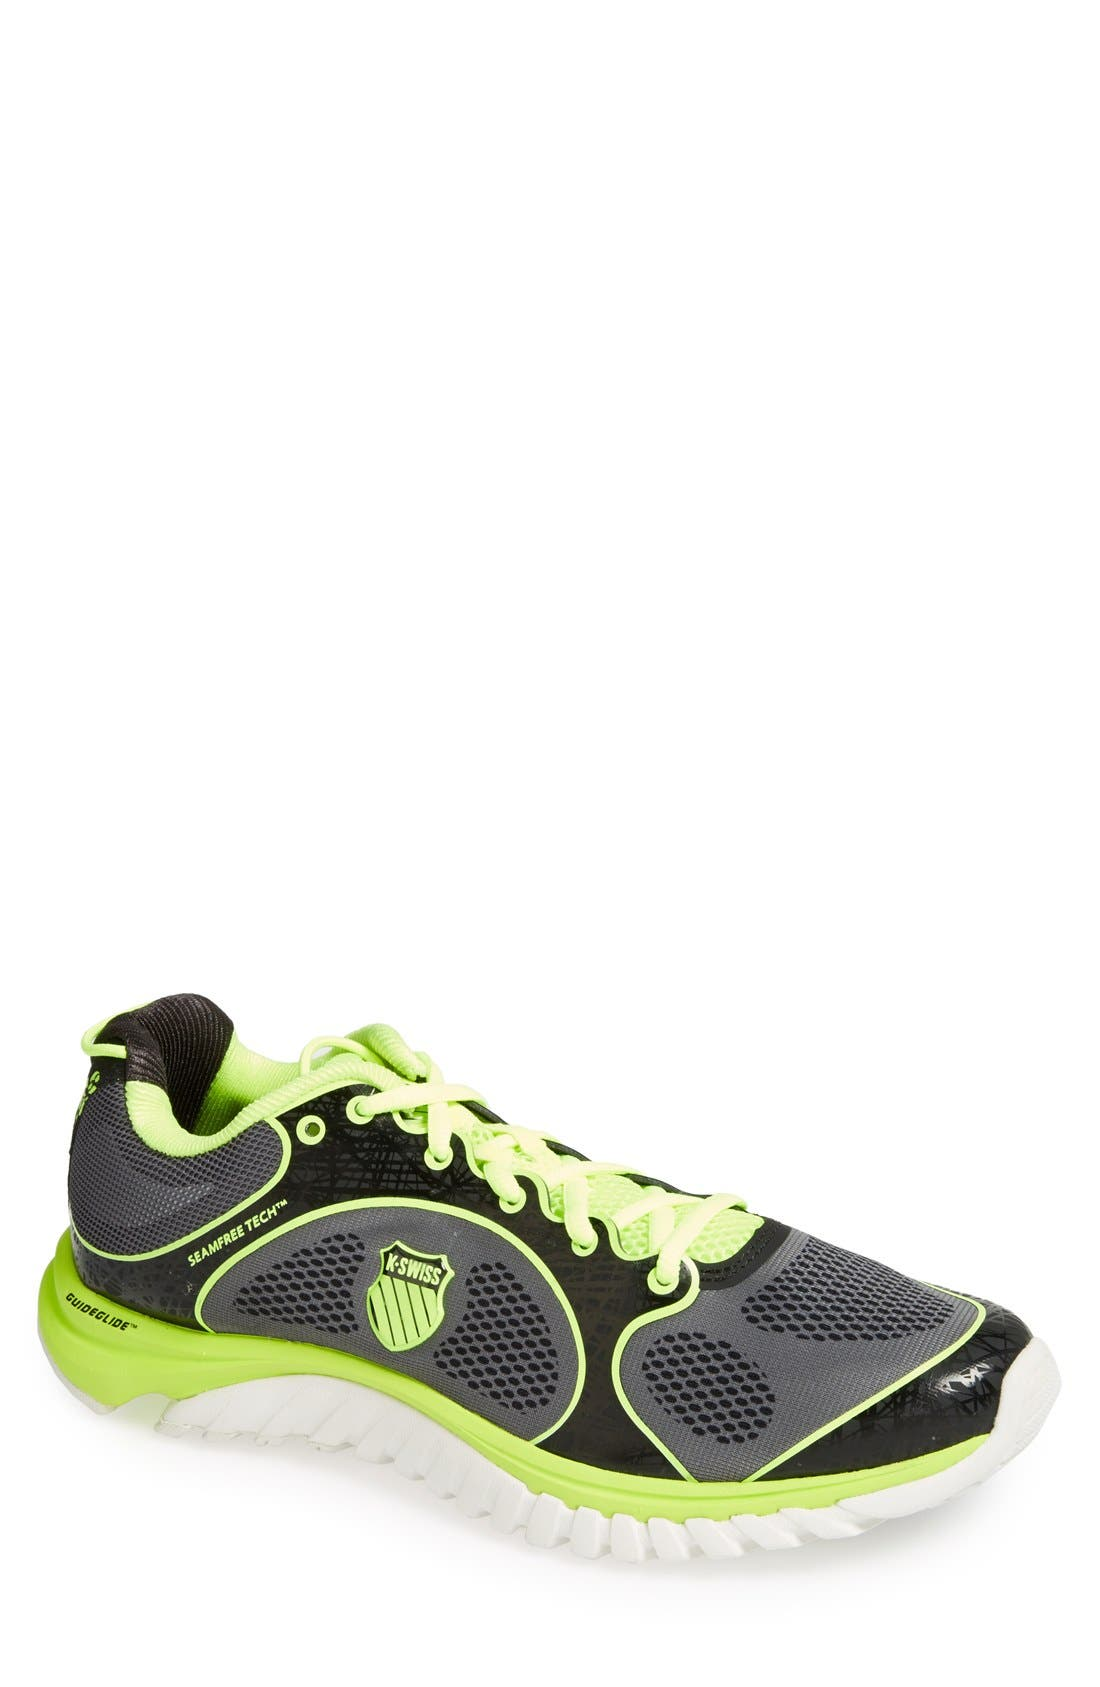 Alternate Image 1 Selected - K-Swiss 'KBL 2 Neutral' Running Shoe (Men)